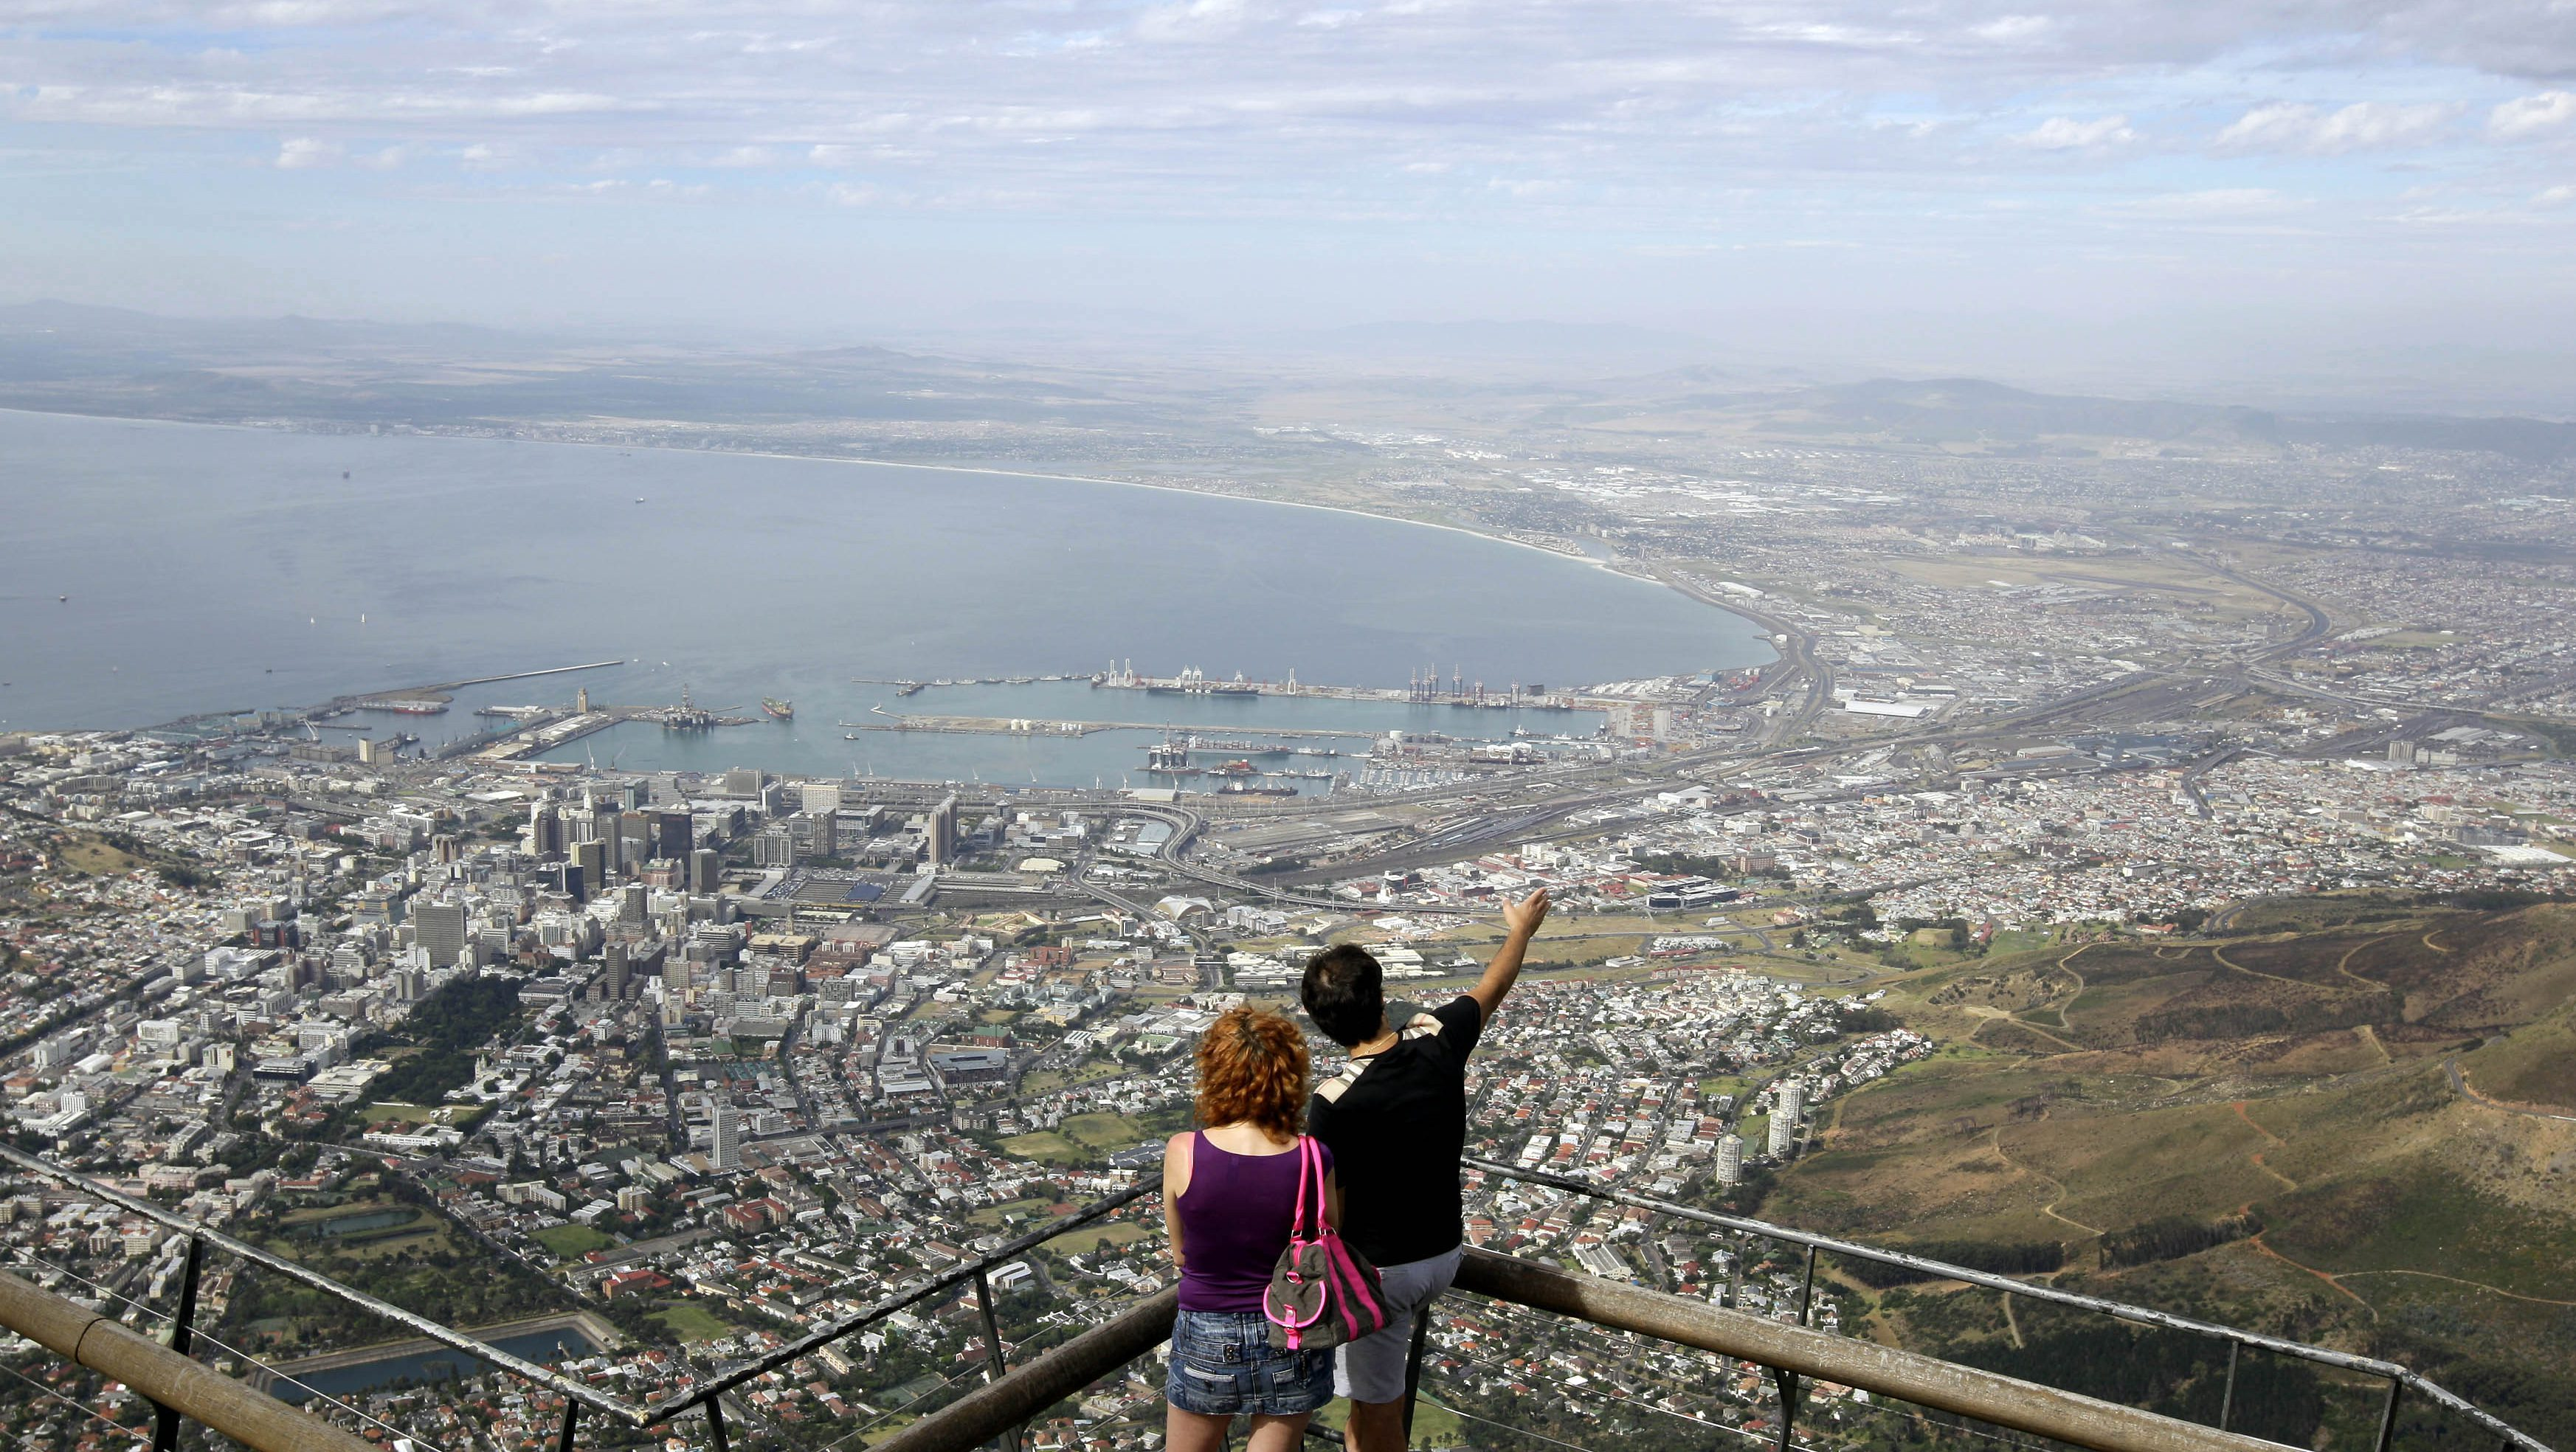 Worst Travel Times To Cape Town